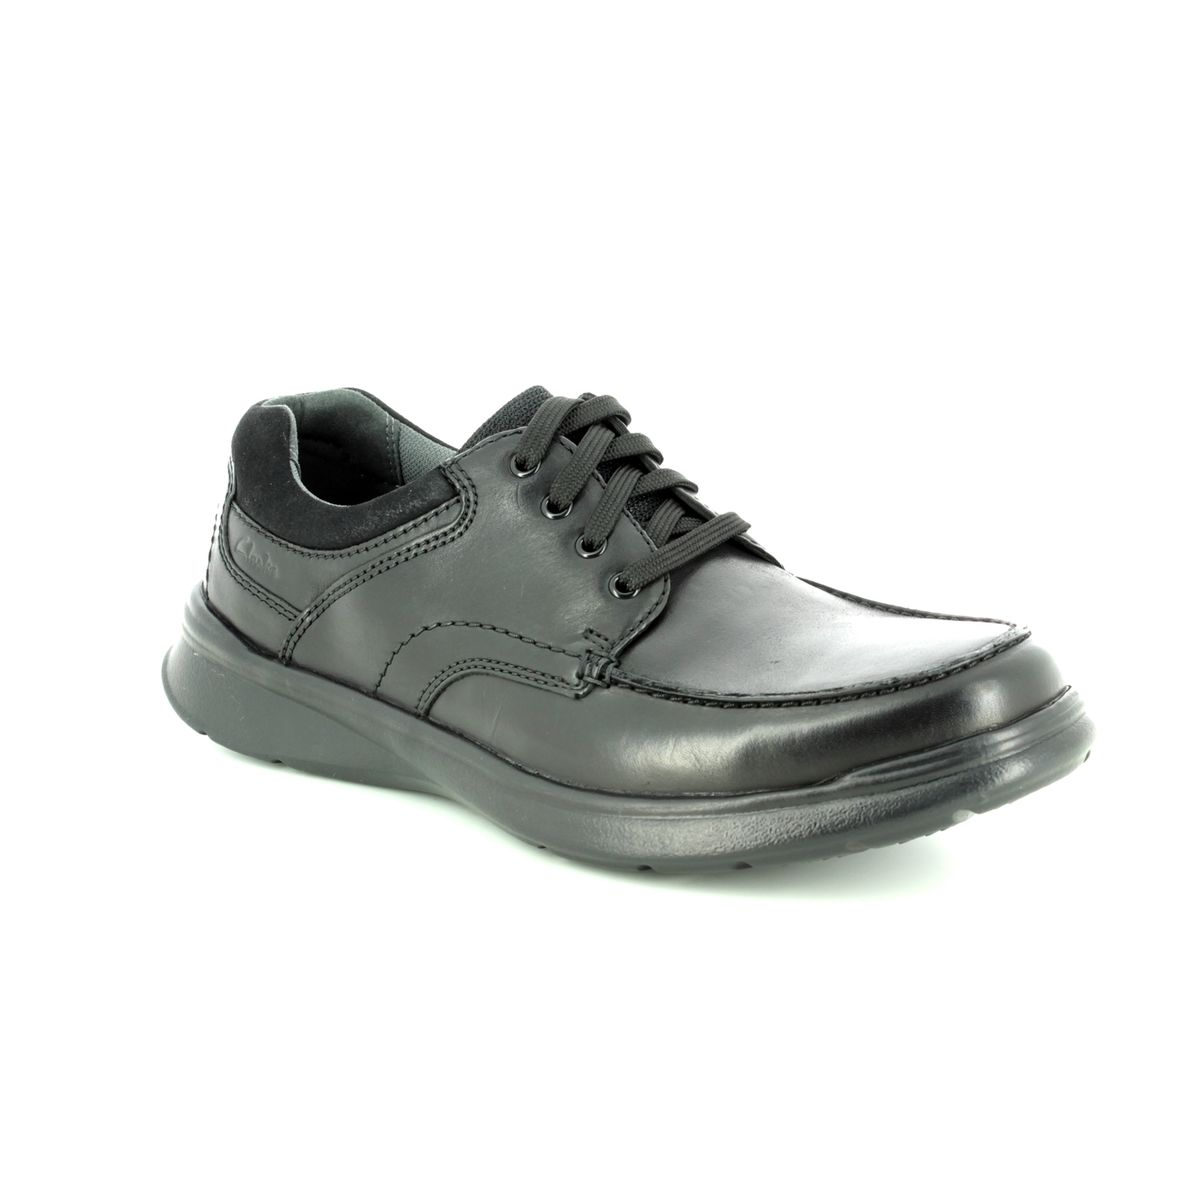 ab206ae31d0 Clarks Casual Shoes - Black leather - 3738/58H COTRELL EDGE